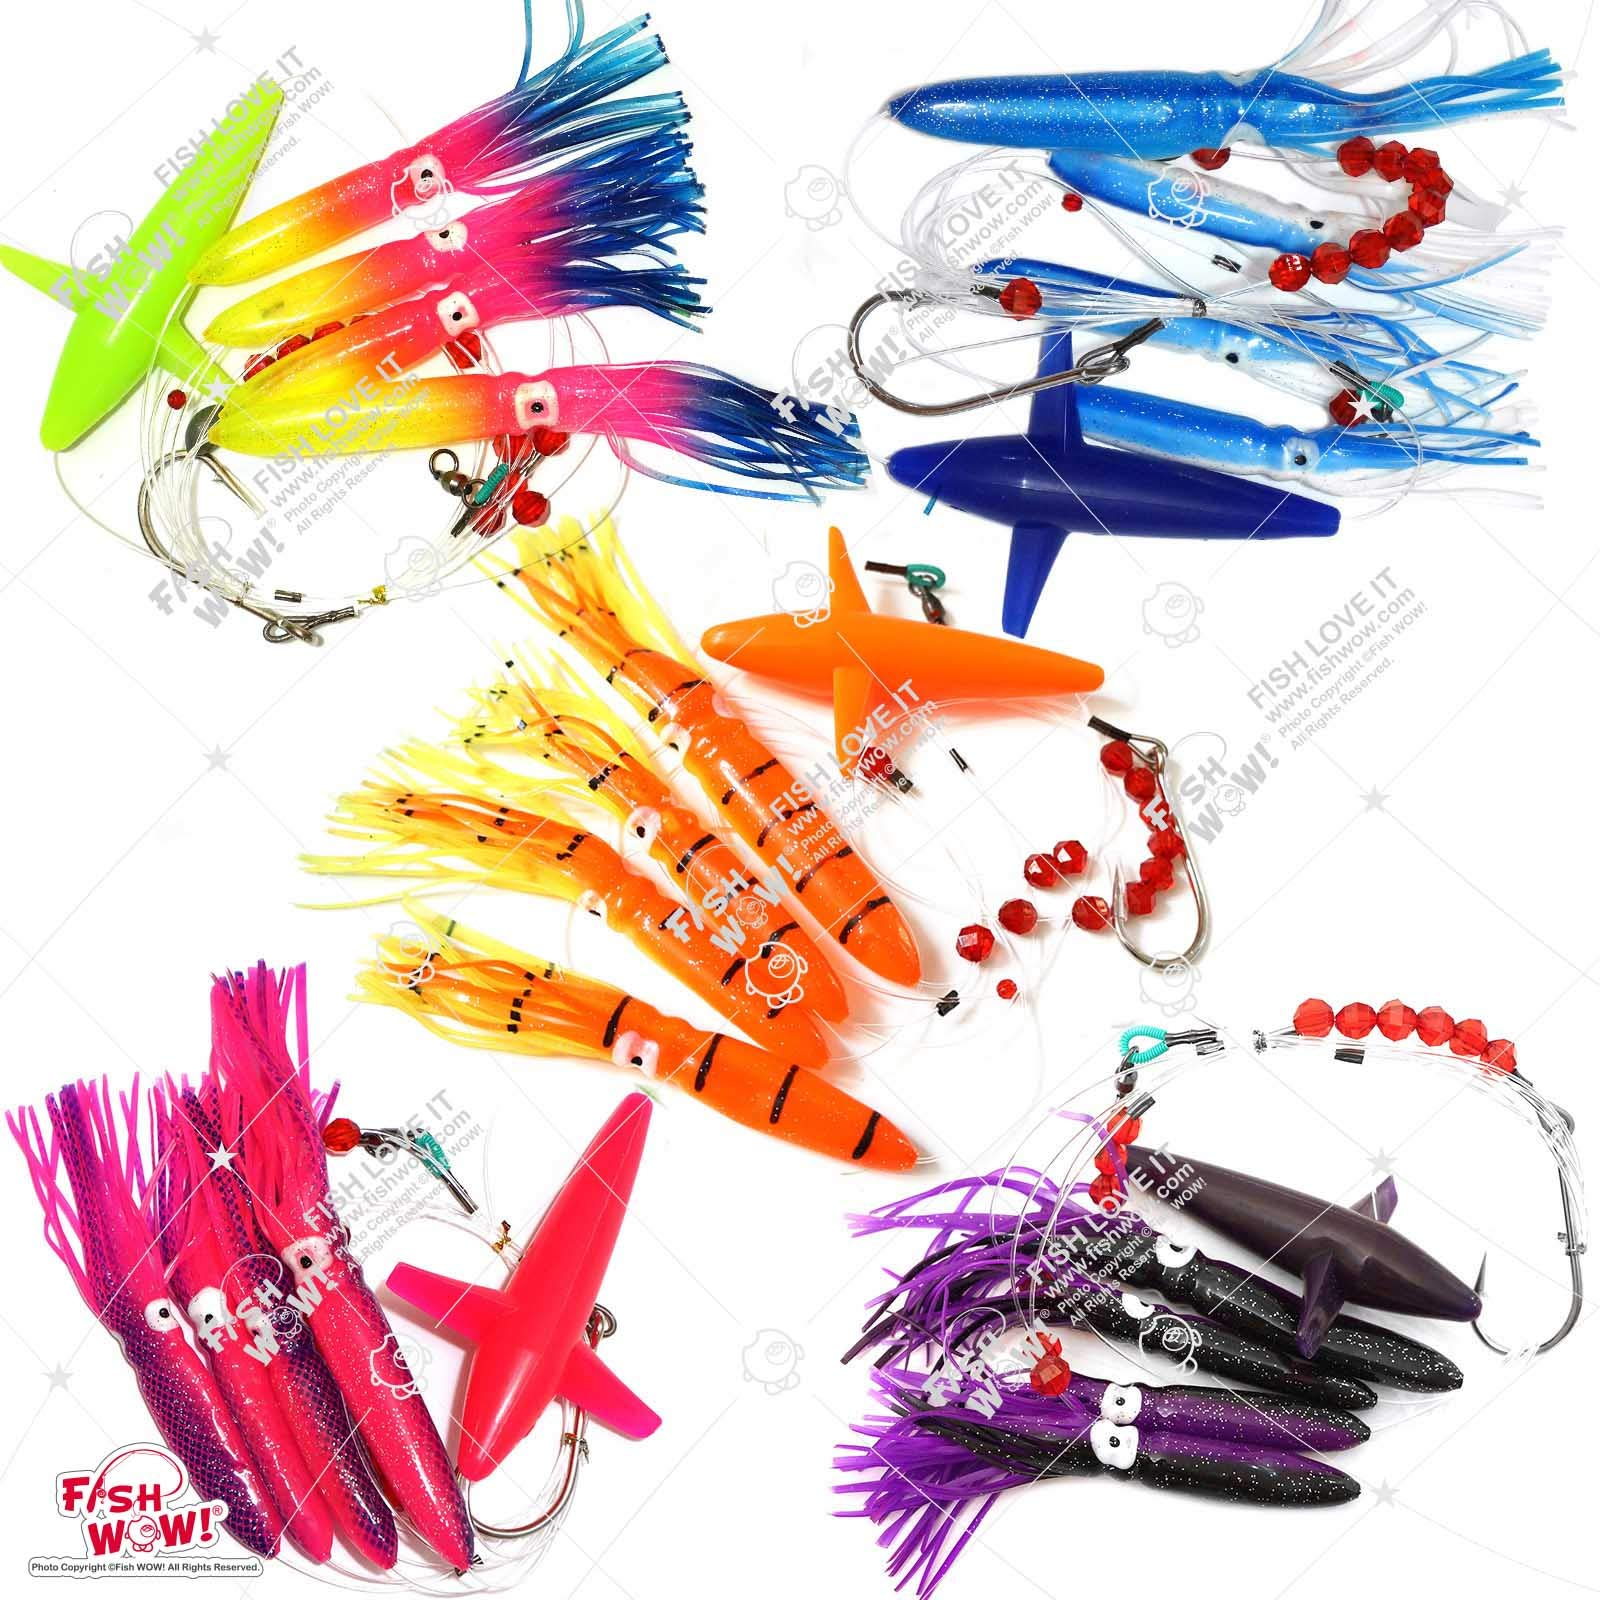 Fish WOW! Fishing Daisy Bird Chain Squid Lure Rig Teaser Trolling - Set of 5 - by Fish WOW!